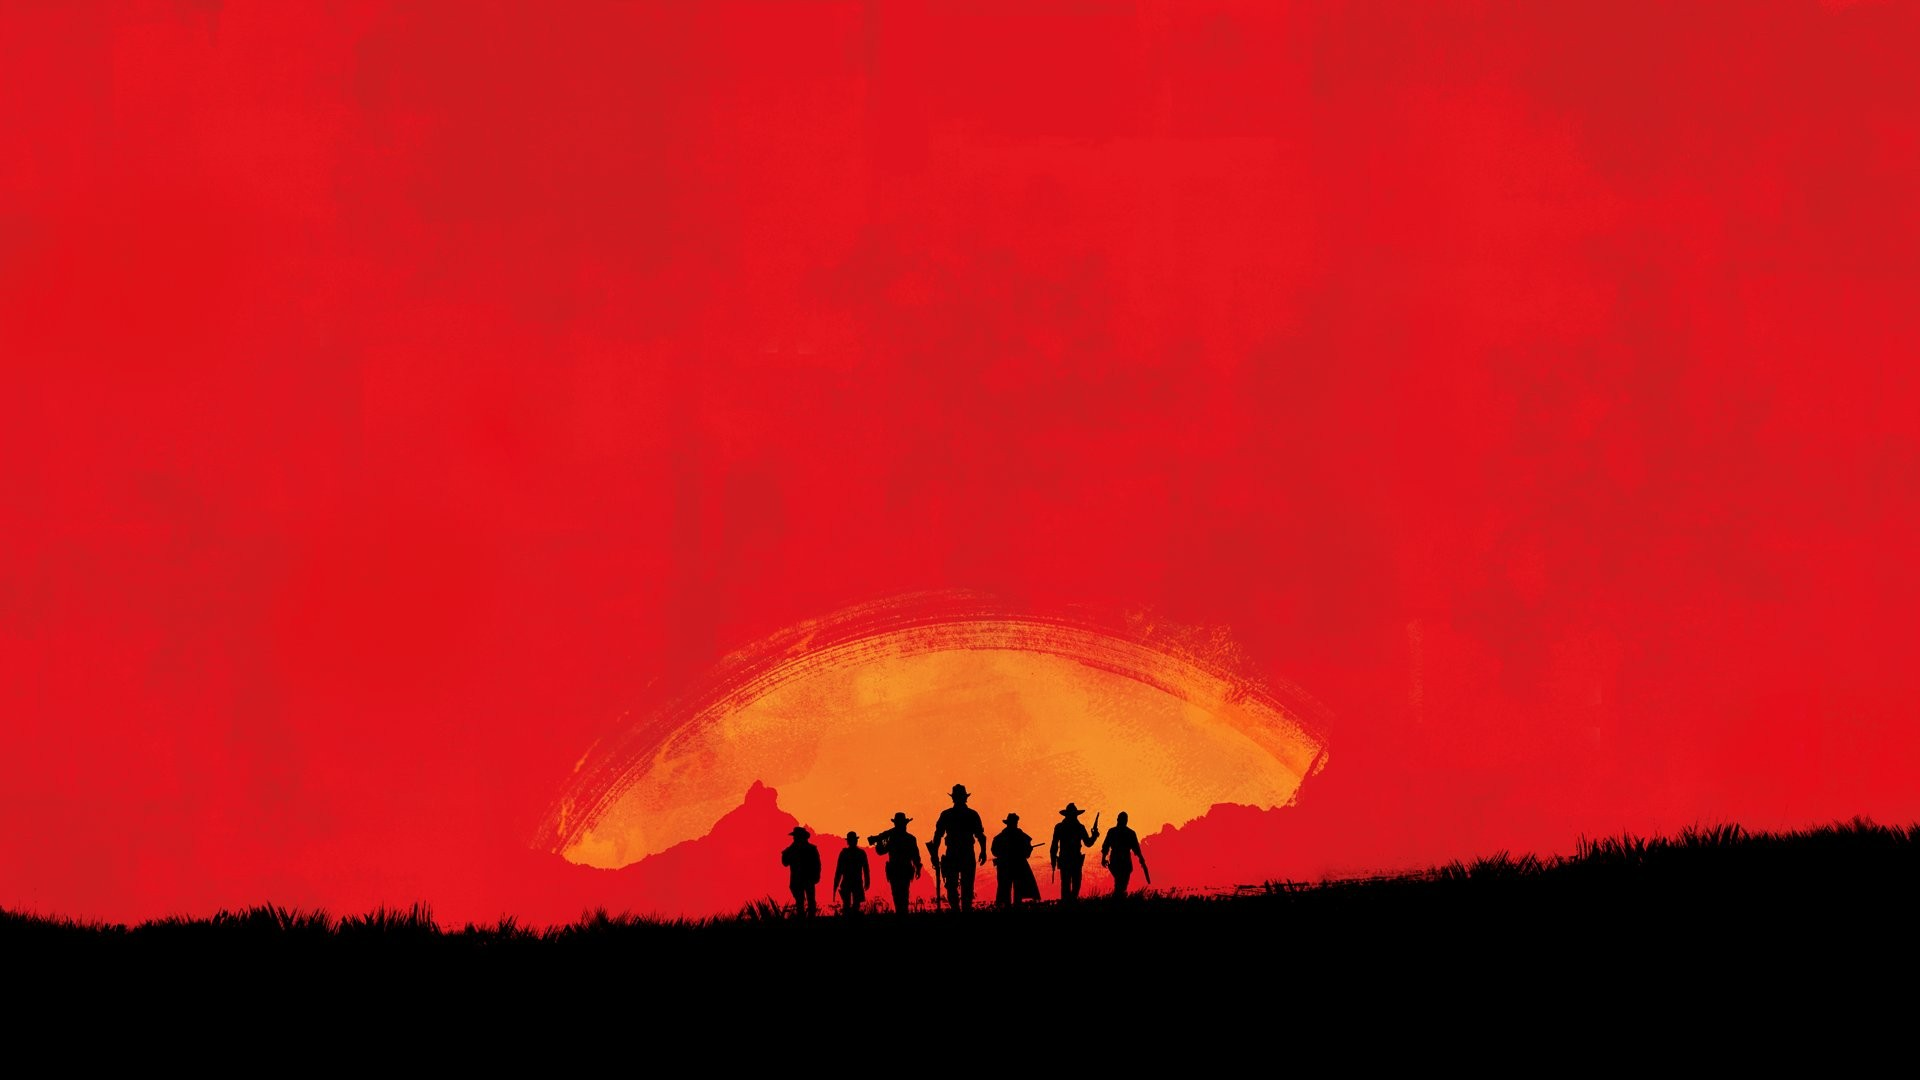 'Red Dead Redemption 2' Looks Like My Next Staycation